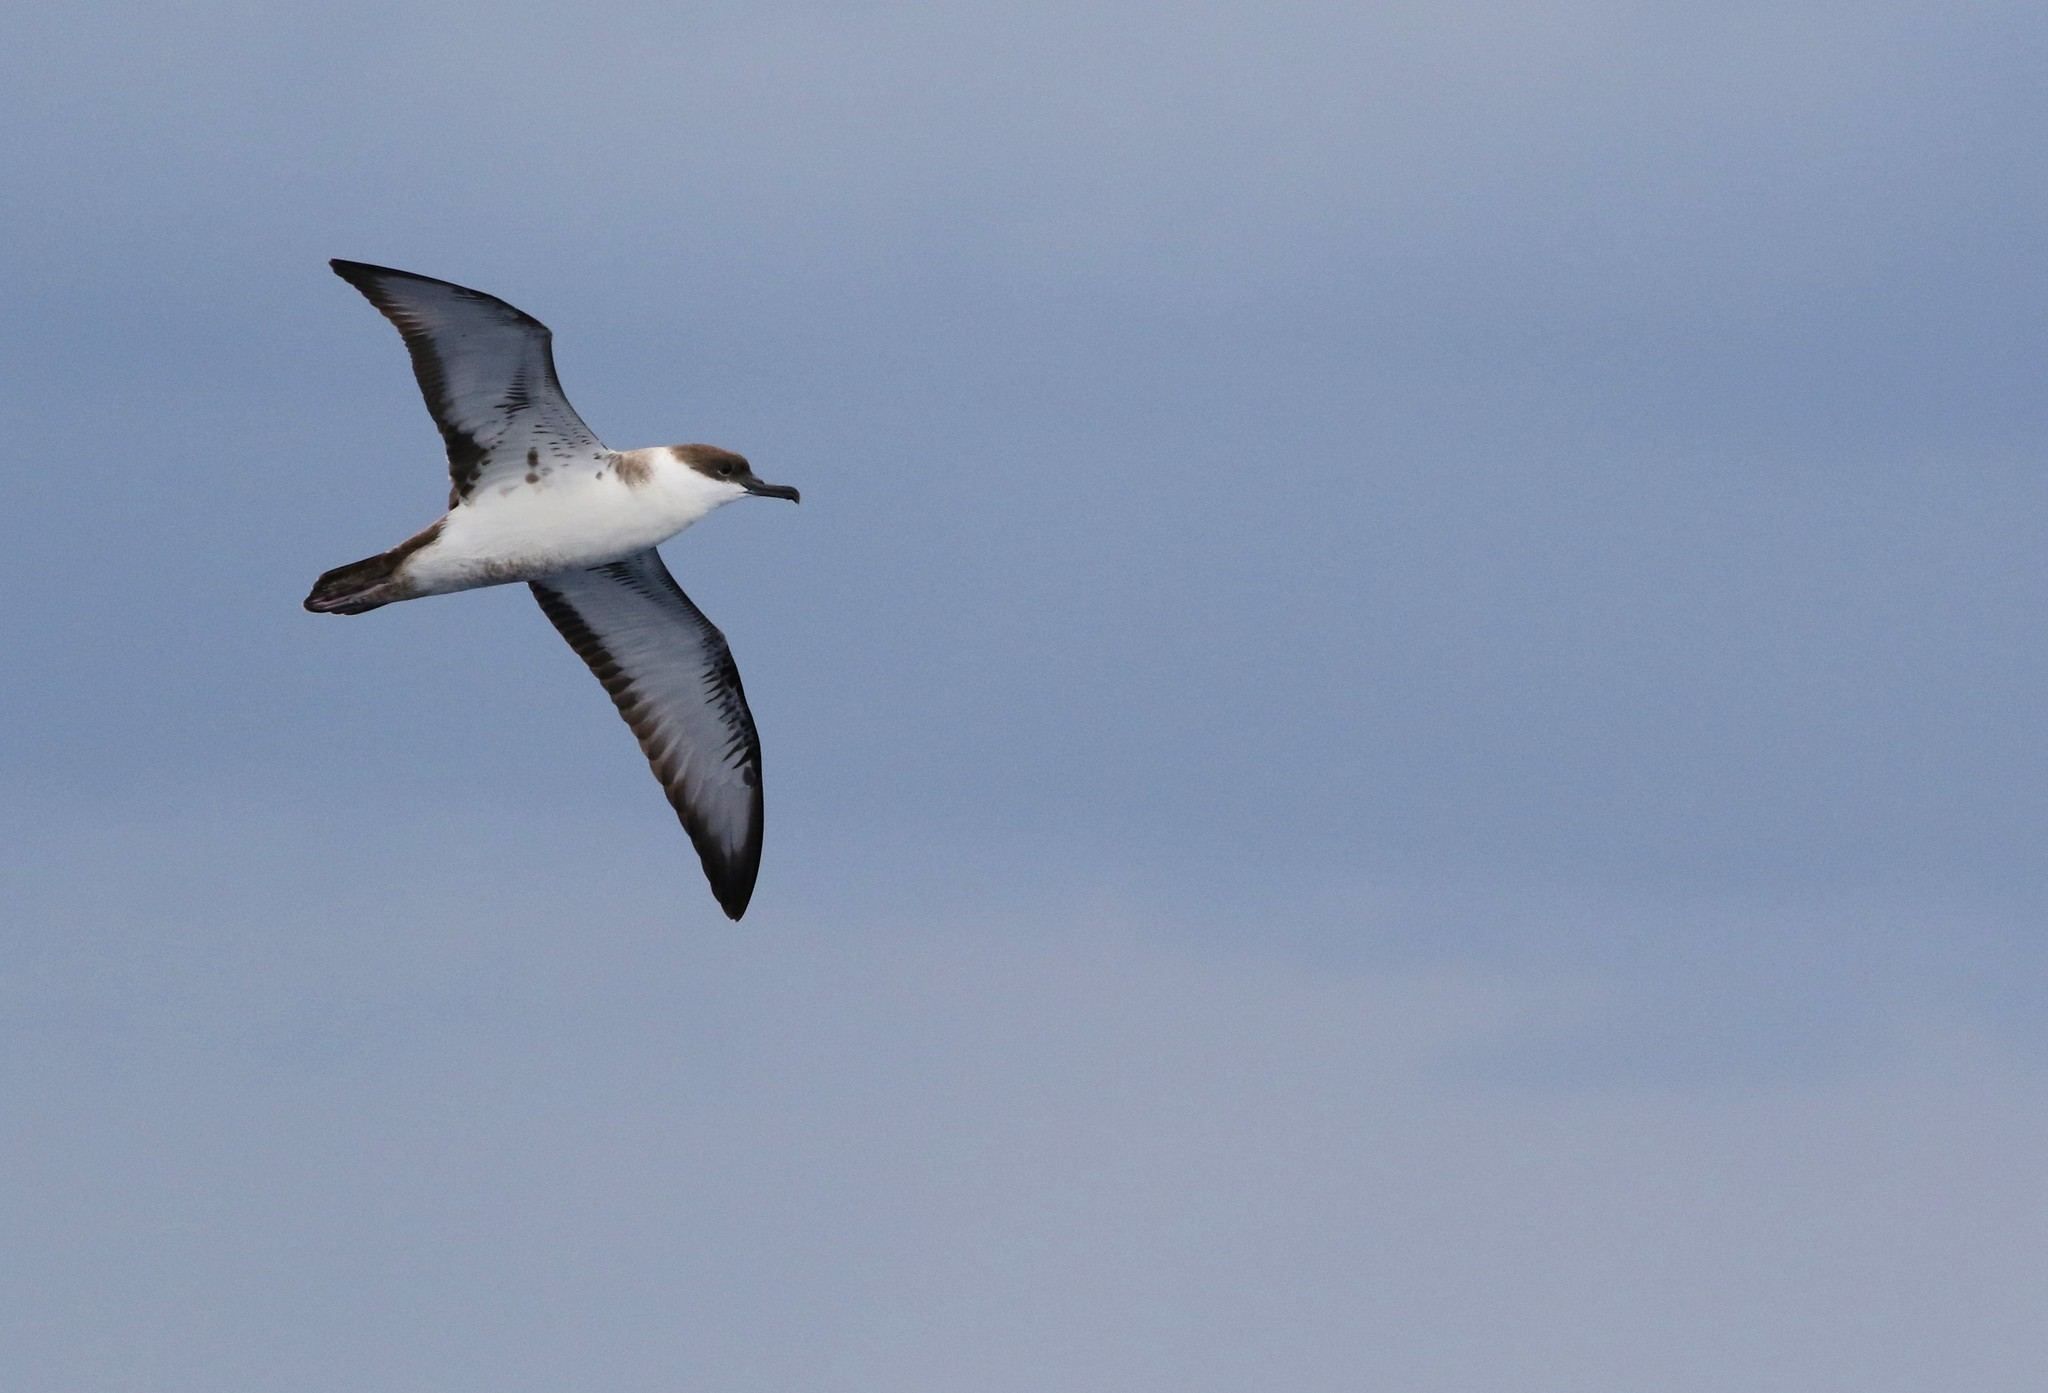 Plastic Ingestion And Bycatch Demographics Of Great Shearwaters From The Gulf Of Maine